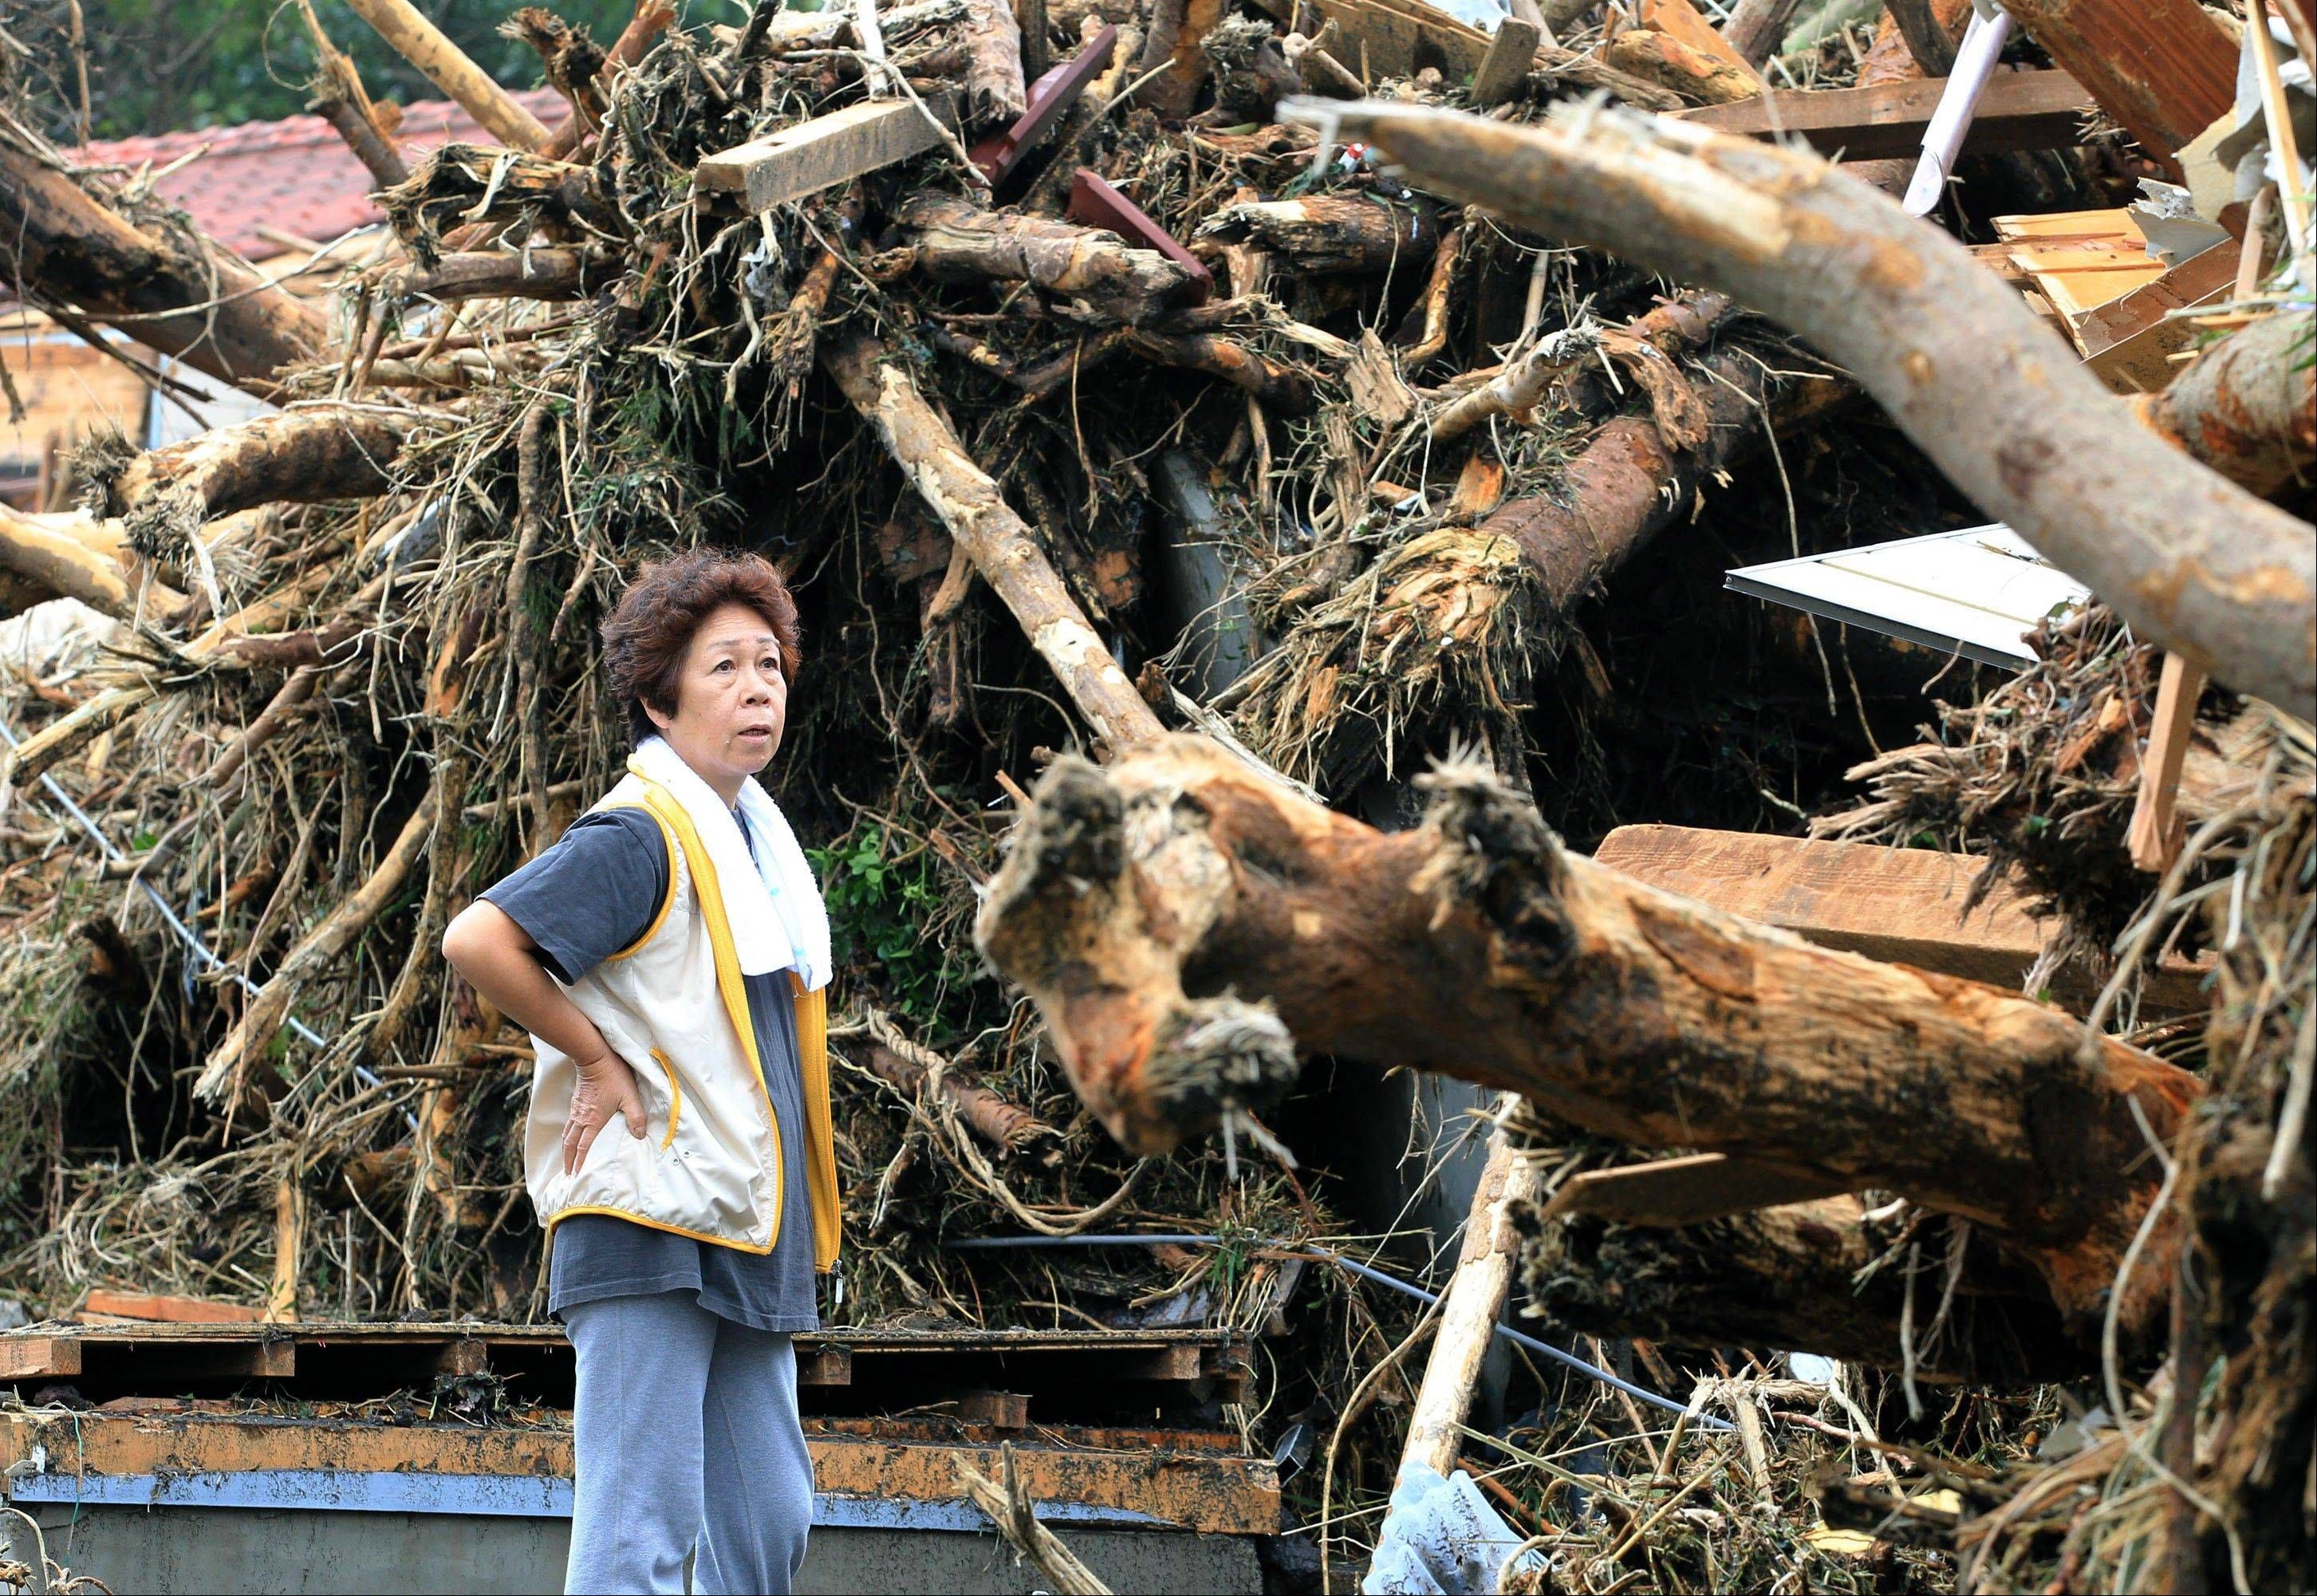 A woman looks at the aftermath of landslides in the rubble of smashed houses in Oshima after a powerful typhoon hit Izu Oshima island, about 75 miles south of Tokyo Wednesday morning, Oct. 16, 2013. Typhoon Wipha triggered landslides and caused multiple deaths on the Japanese island, before sweeping up the country�s east coast, grounding hundreds of flights and paralyzing public transportation in Tokyo during Wednesday morning�s rush hour.